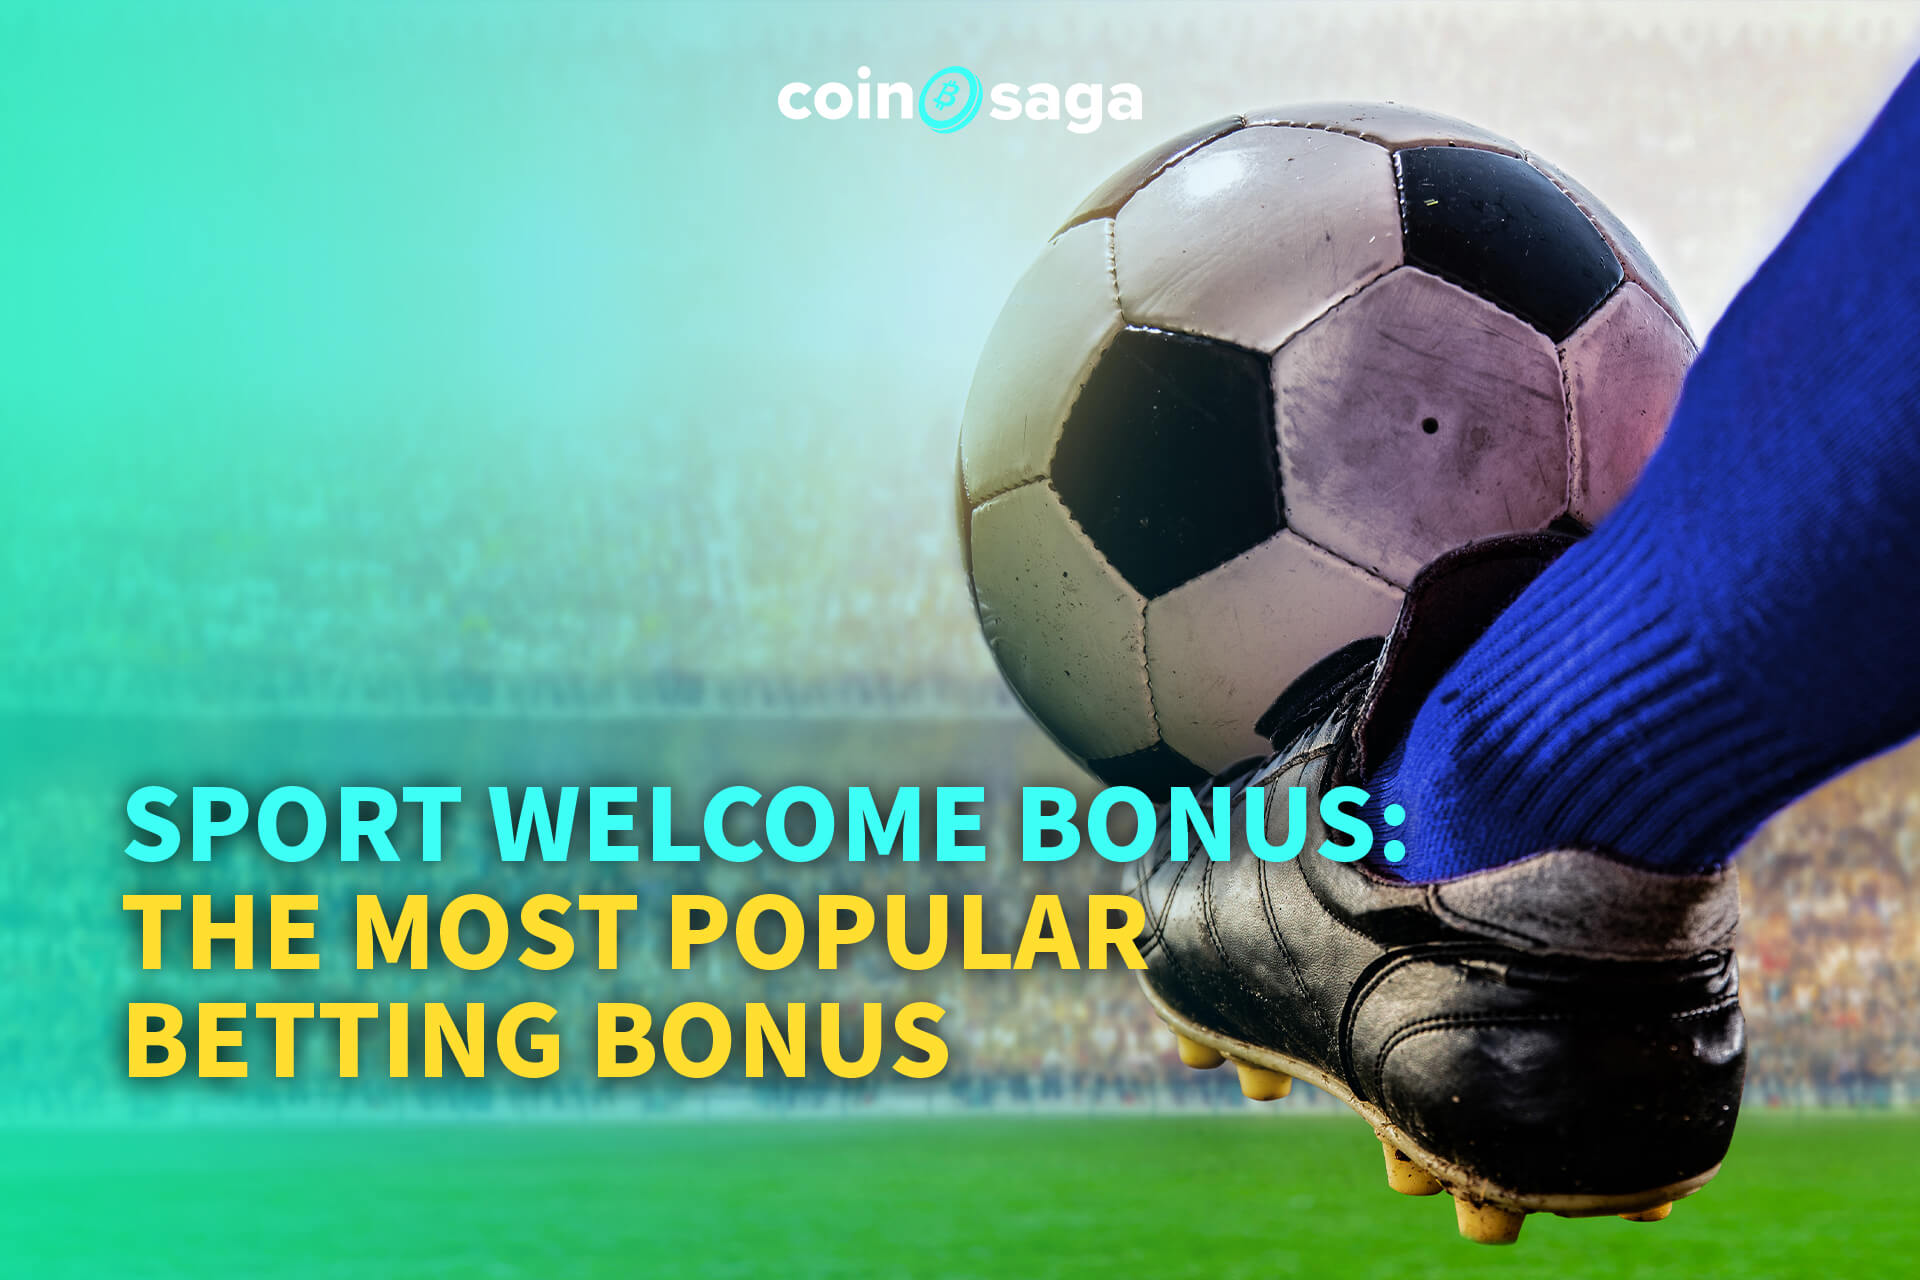 sport welcome bonus